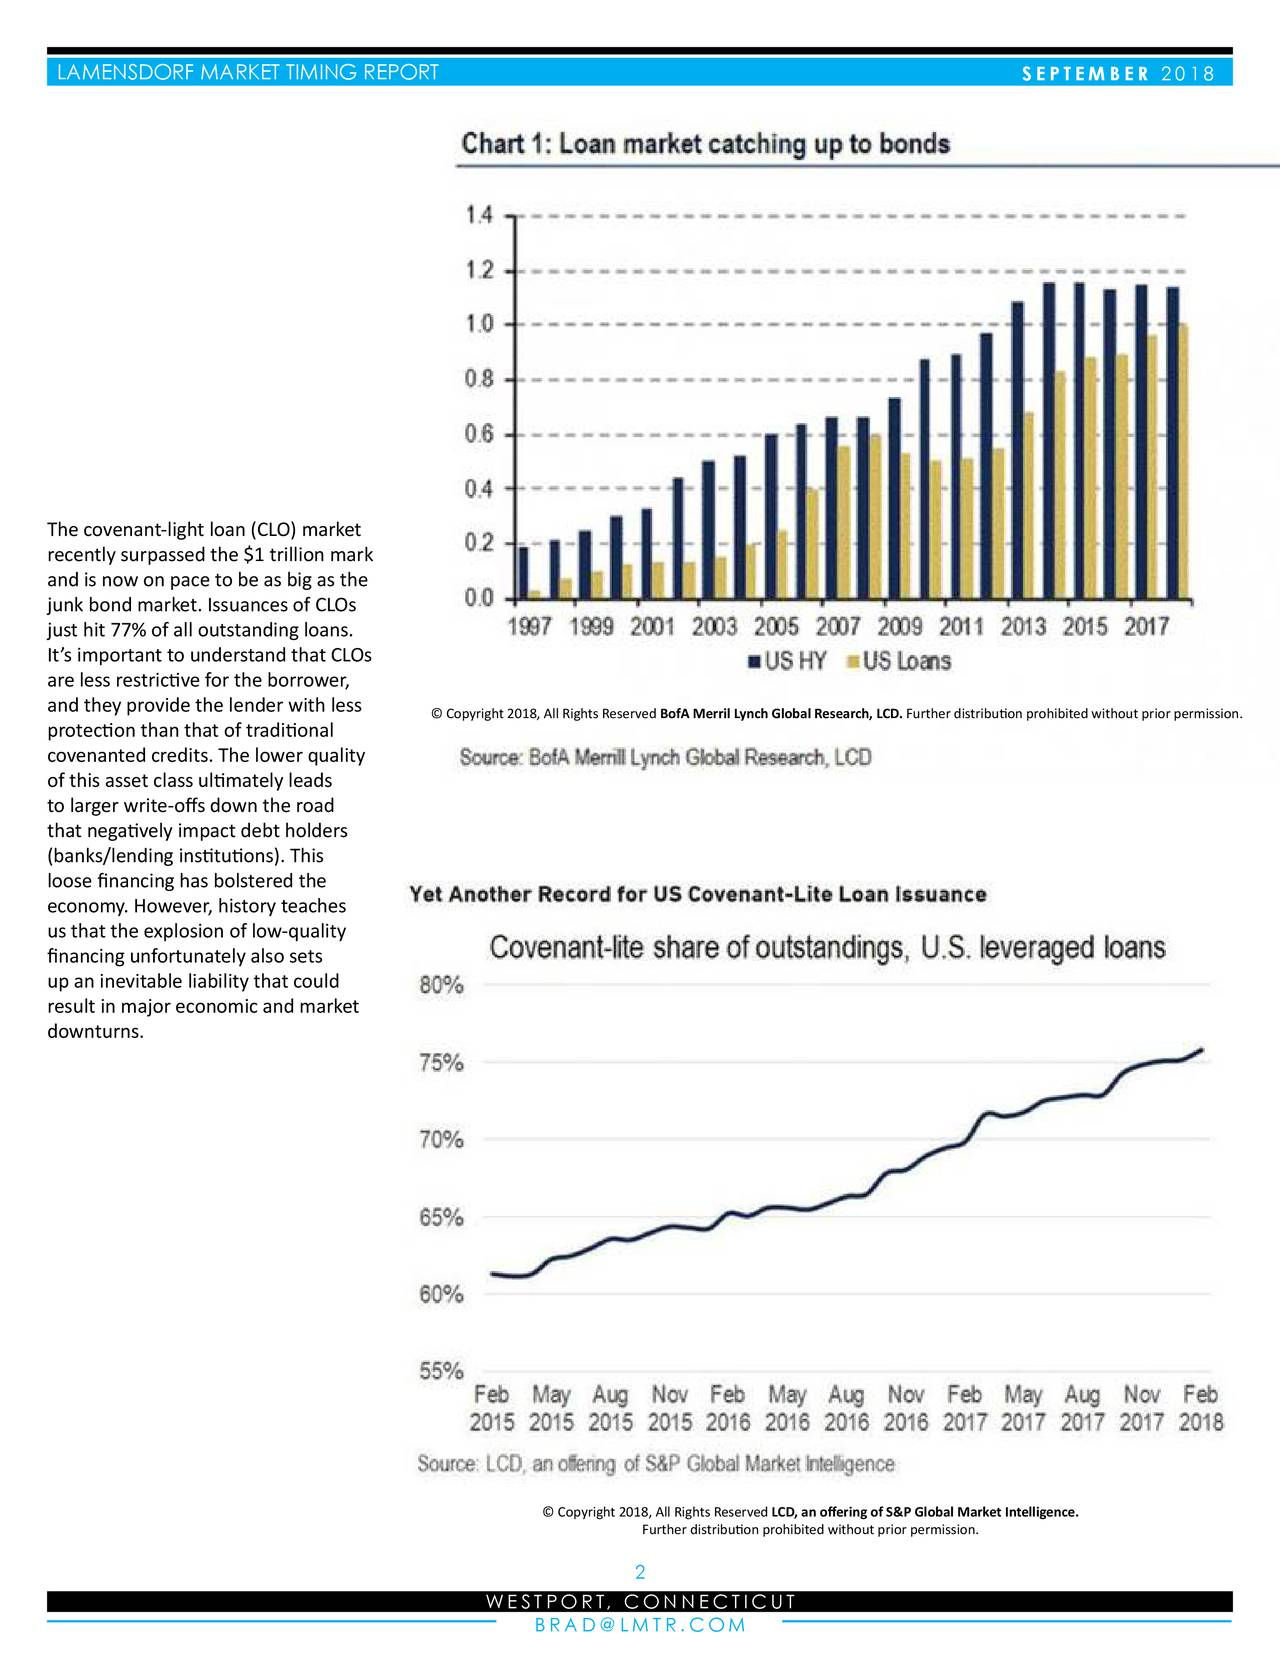 The covenant-light loan (CLO) market recently surpassed the $1 trillion mark and is now on pace to be as big as the junk bond market. Issuances of CLOs just hit 77% of all outstanding loans. It's important to understand that CLOs are less restrictive for the borrower, and they provide the lender with less © Copyright 2018, All Rights Reserved BofA Merril Lynch Global Research, LCD. Further distribution prohibited without prior permission. protection than that of traditional covenanted credits. The lower quality of this asset class ultimately leads to larger write-offs down the road that negatively impact debt holders (banks/lending institutions). This loose financing has bolstered the economy. However, history teaches us that the explosion of low-quality financing unfortunately also sets up an inevitable liability that could result in major economic and market downturns. © Copyright 2018, All Rights Reserved LCD, an offering of S&P Global Market Intelligence. Further distribution prohibited without prior permission. 2 WESTPORT, CONNECTICUT BRAD@LMTR.COM